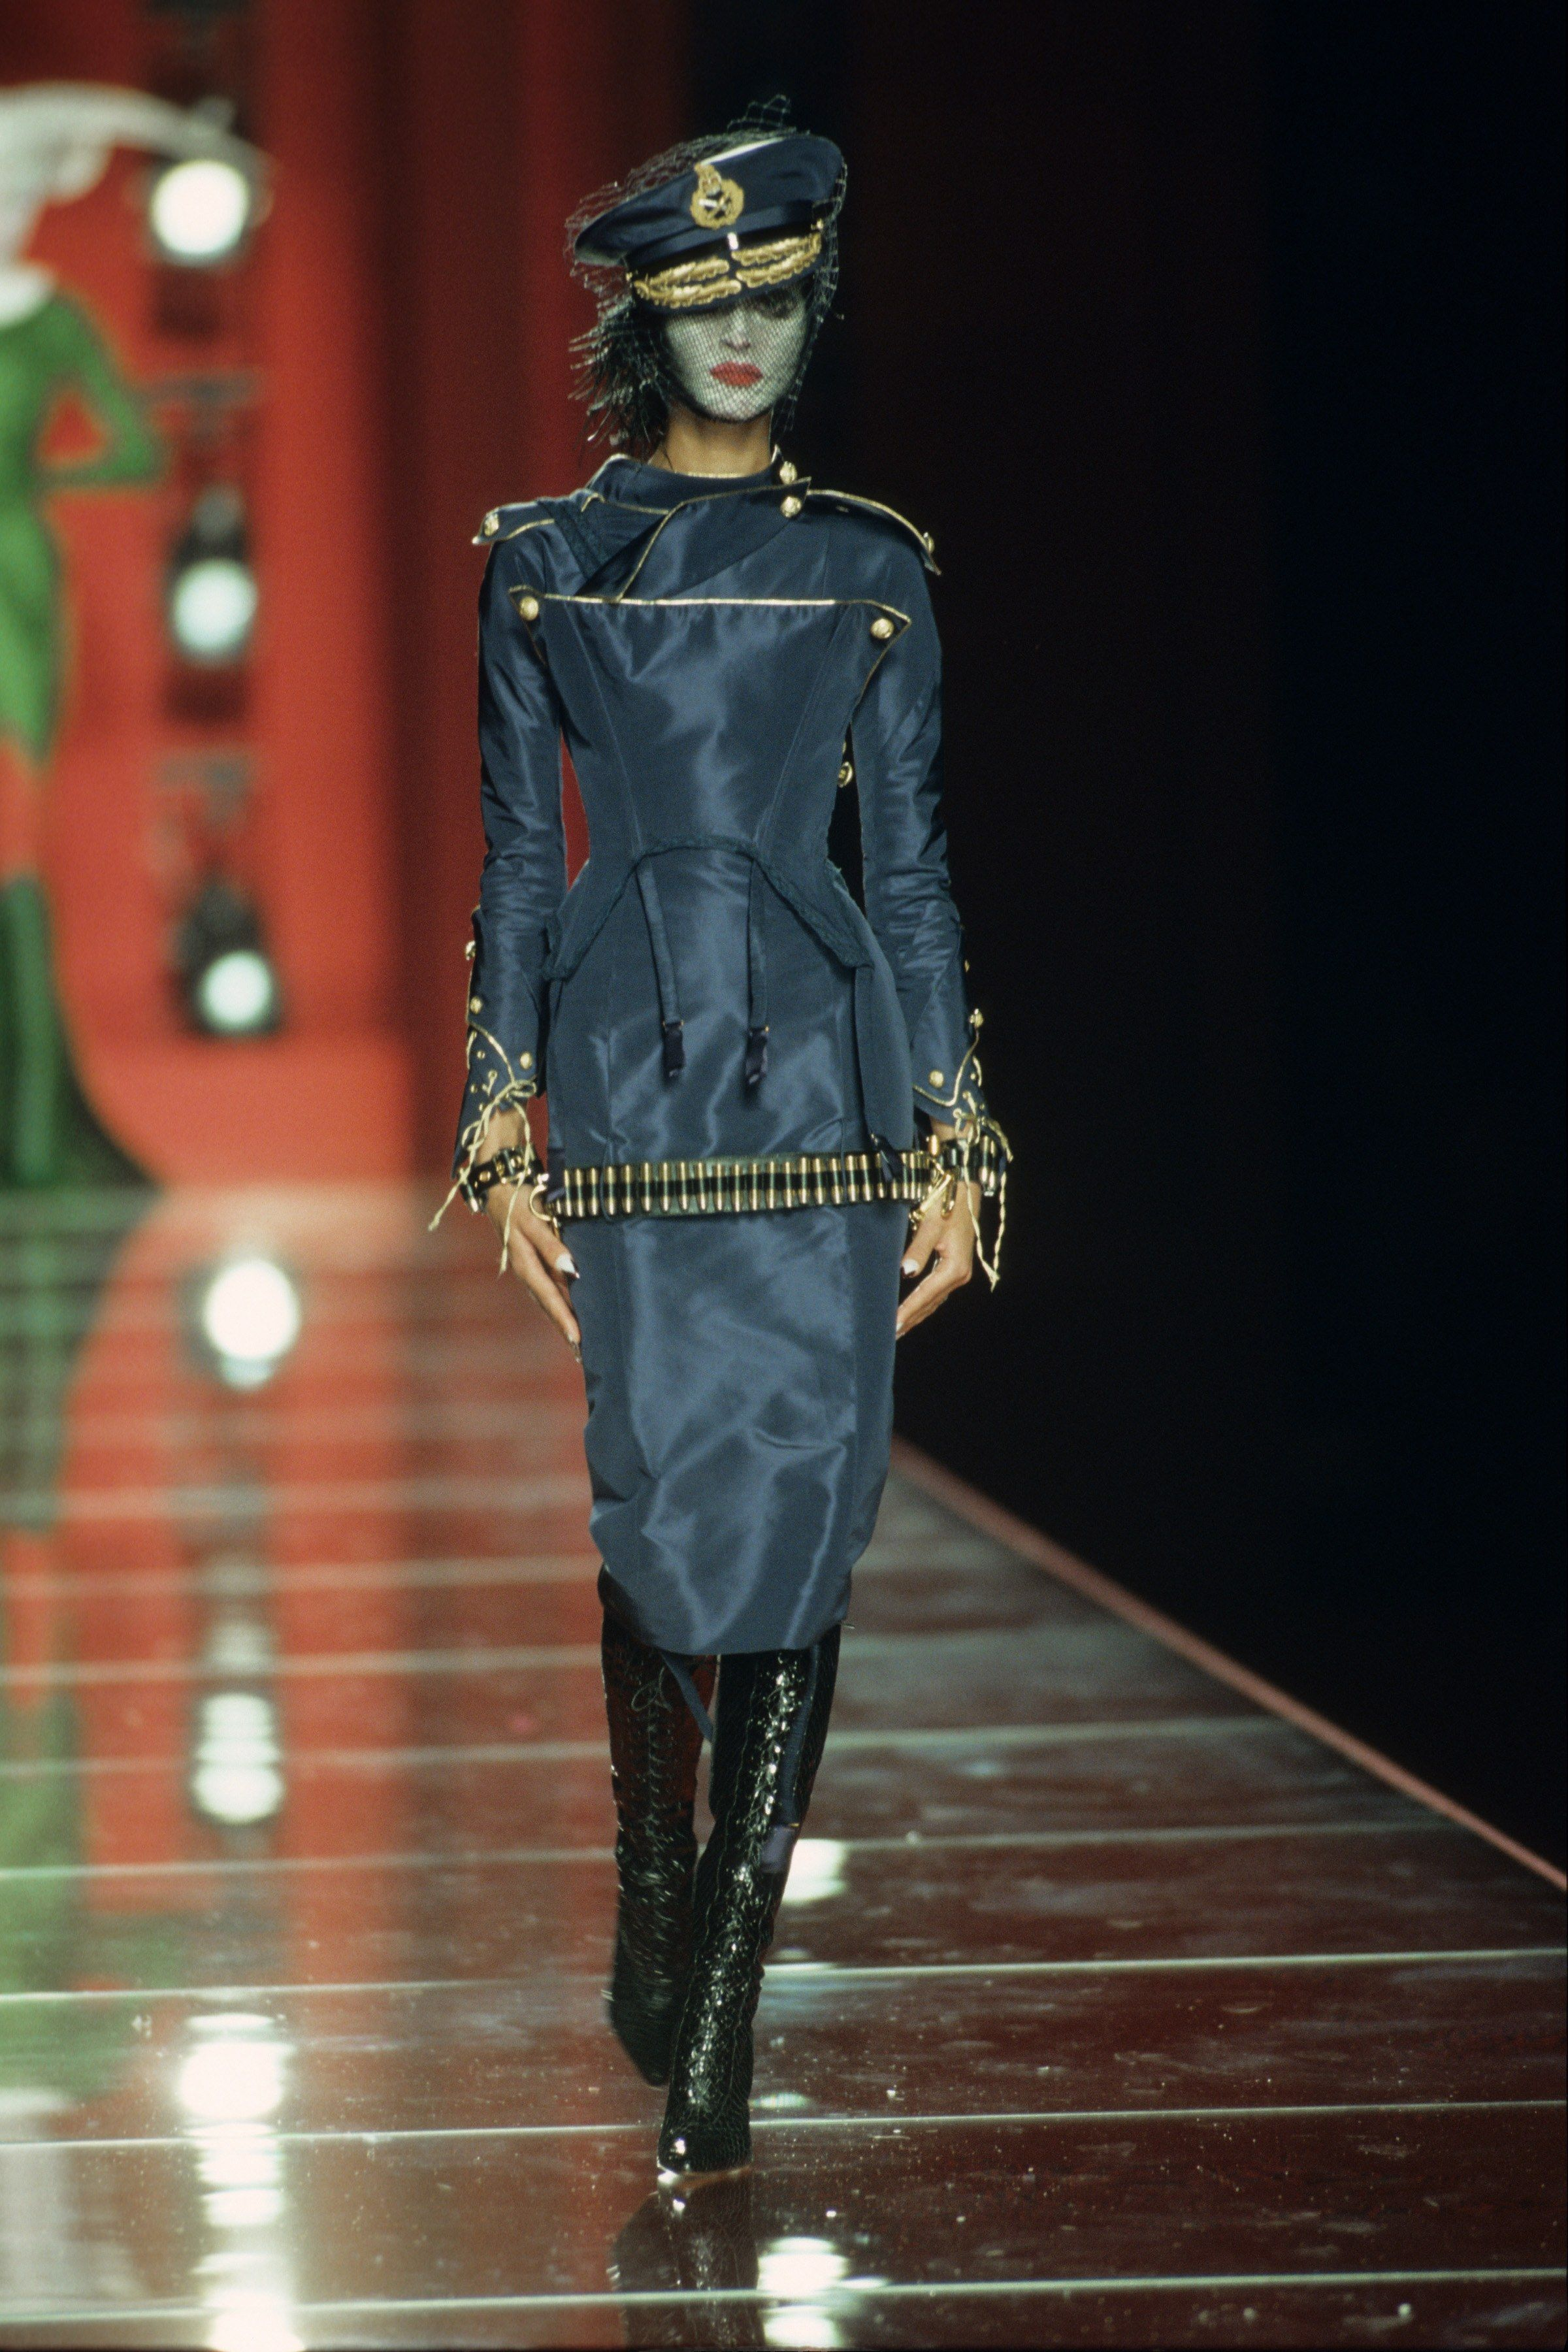 Informative Image of Dior Fall Haute Couture Show 2000